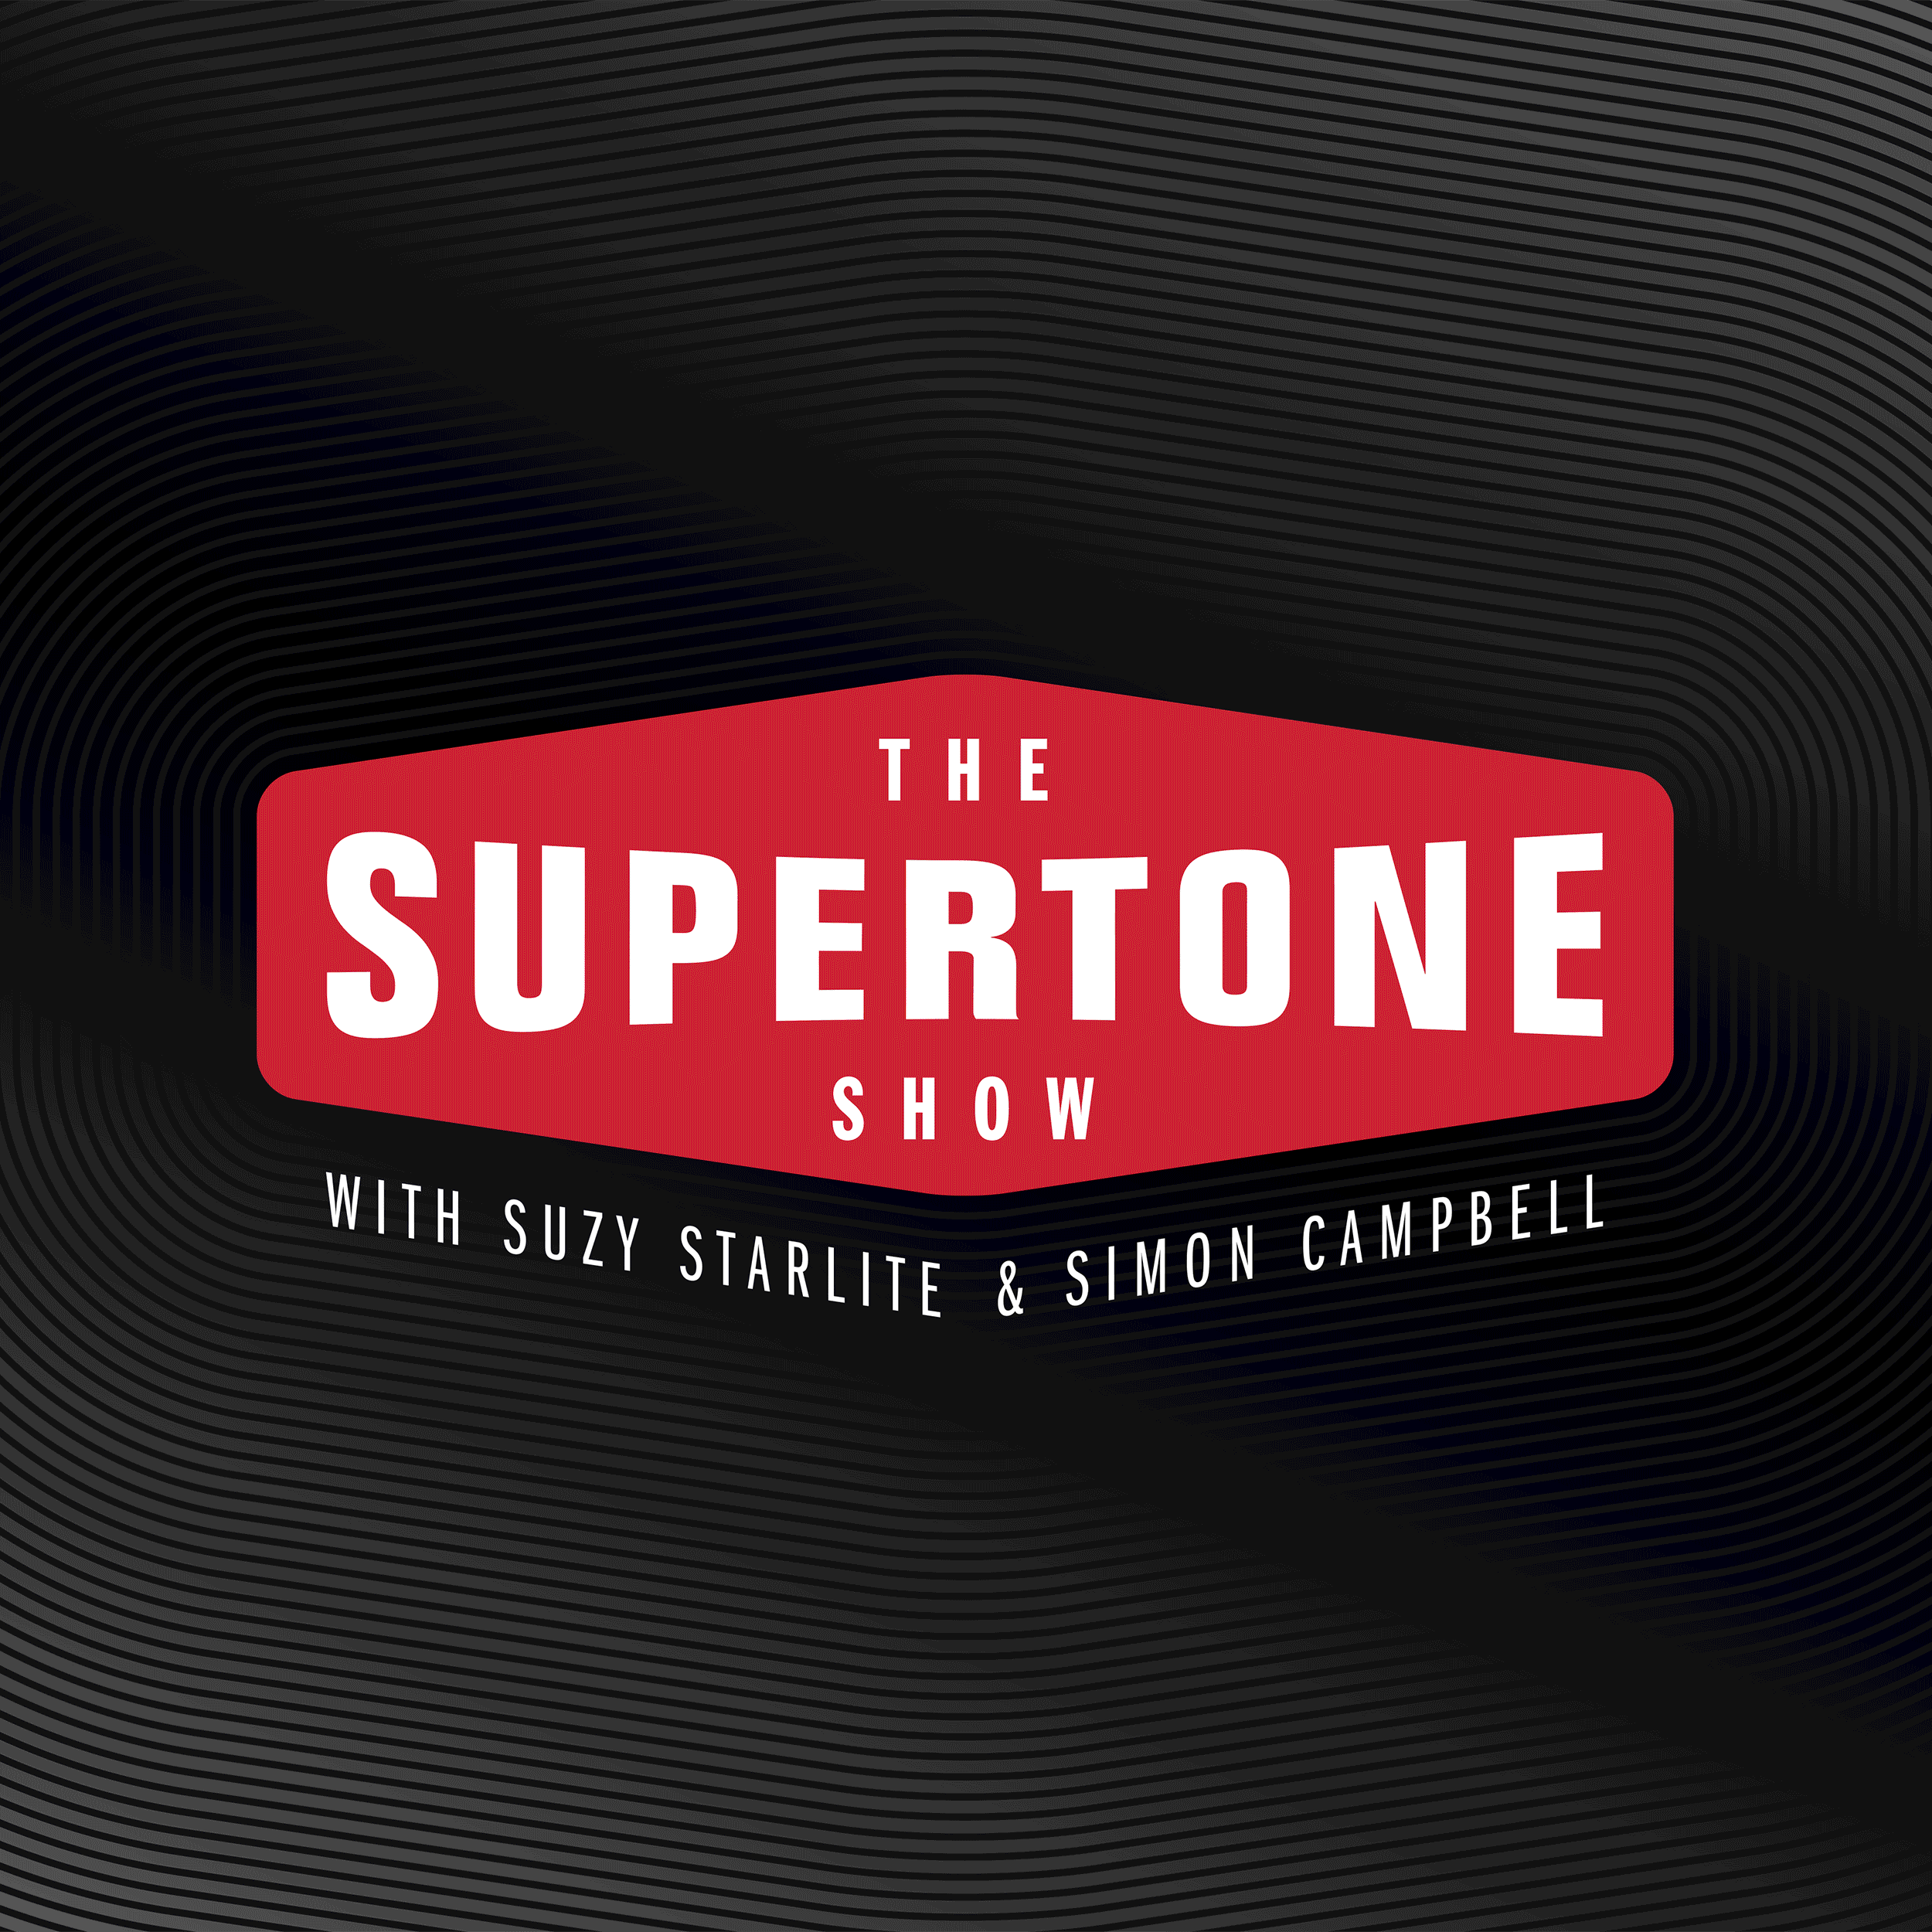 Artwork for Episode 53: The Supertone Show with Suzy Starlite and Simon Campbell